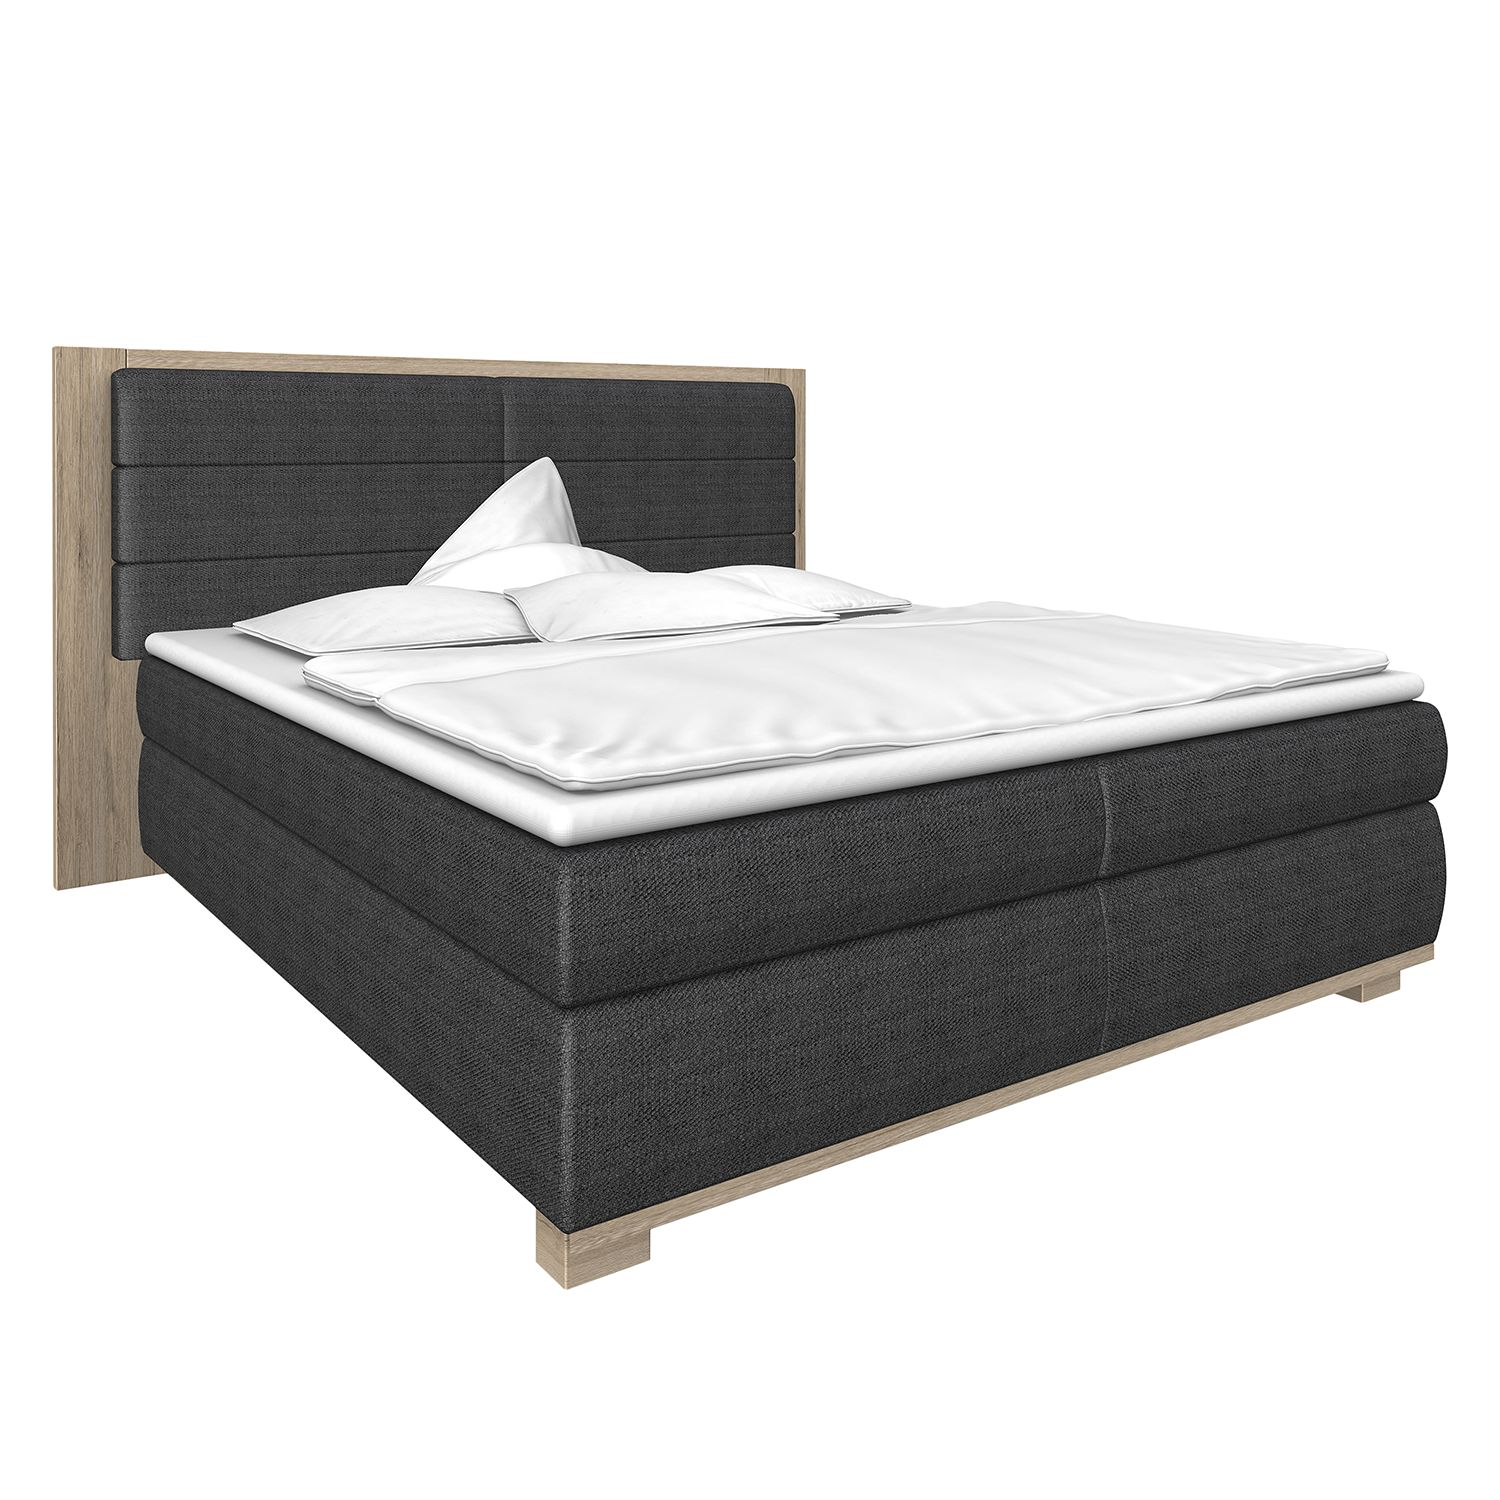 boxspringbett ohio kaltschaumtopper anthrazit schlammeiche dekor wimex online kaufen bei. Black Bedroom Furniture Sets. Home Design Ideas